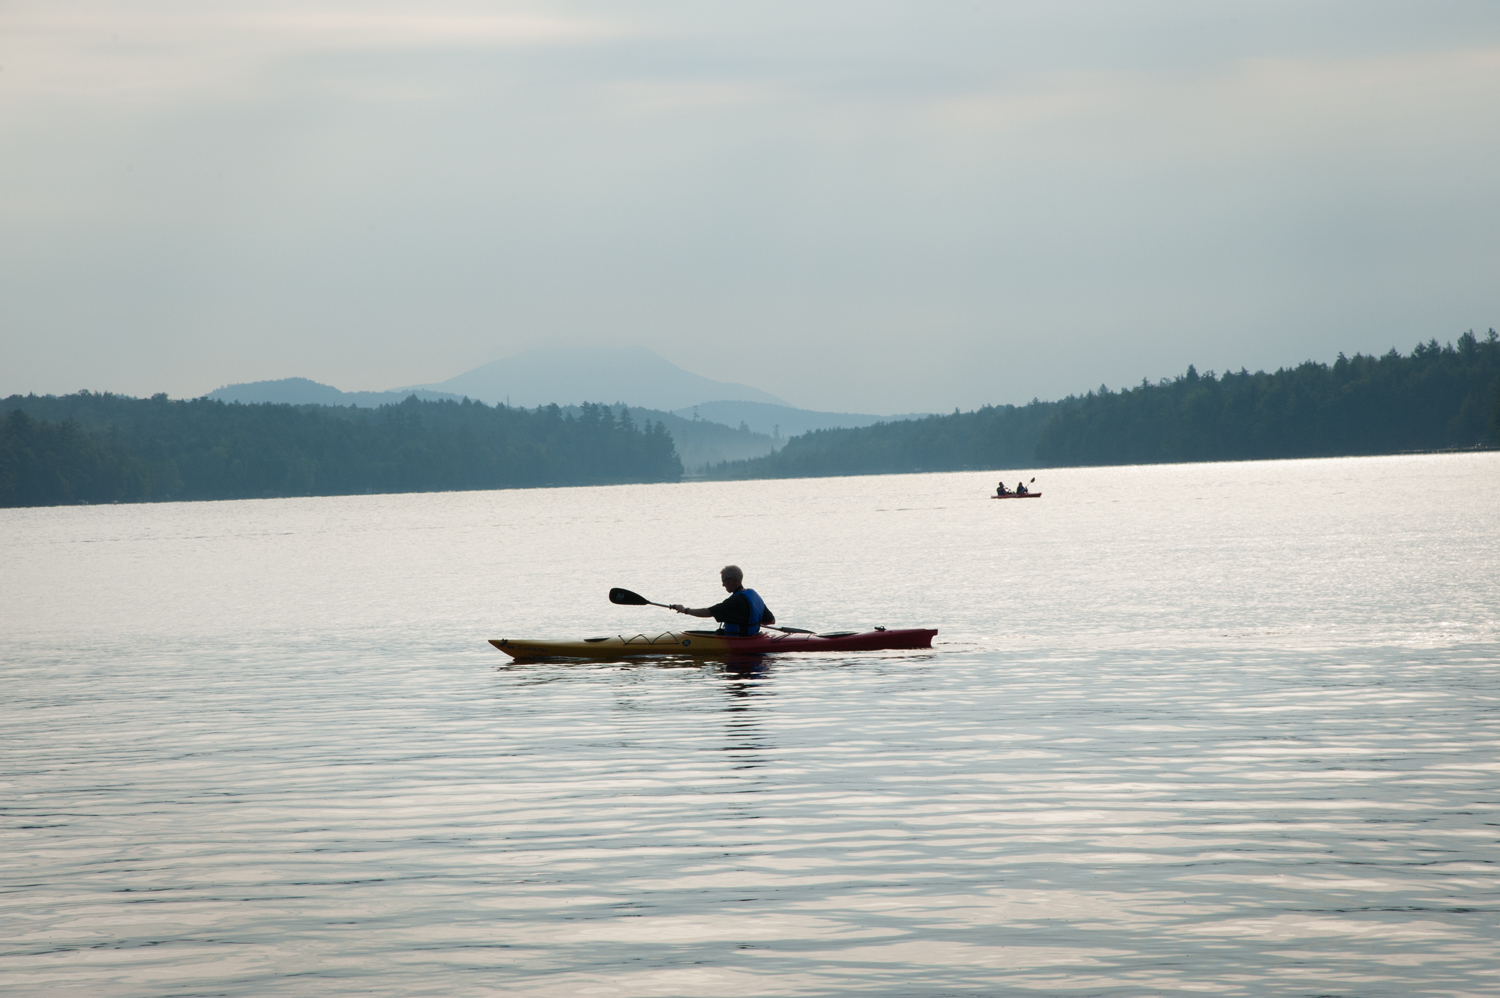 Kayaker on Raquette Lake with Blue Mountain in the background